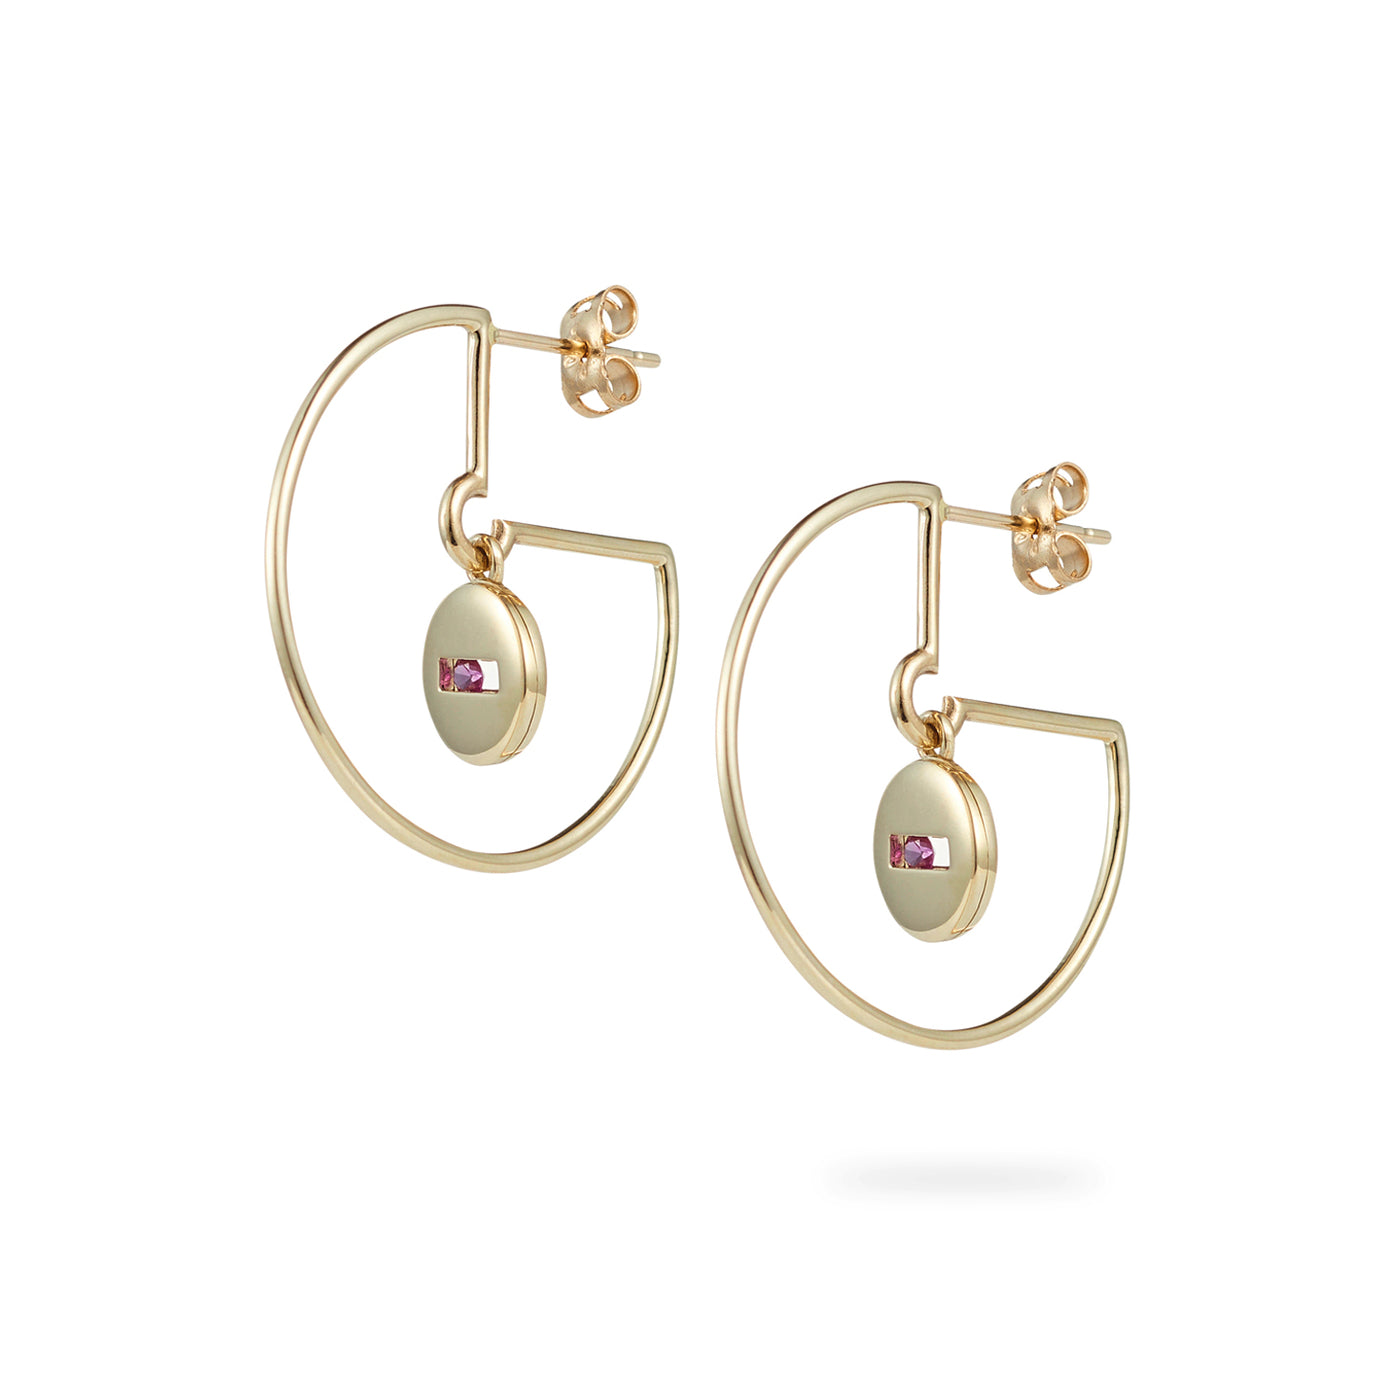 Luke Rose Jewellery gold hoop earrings